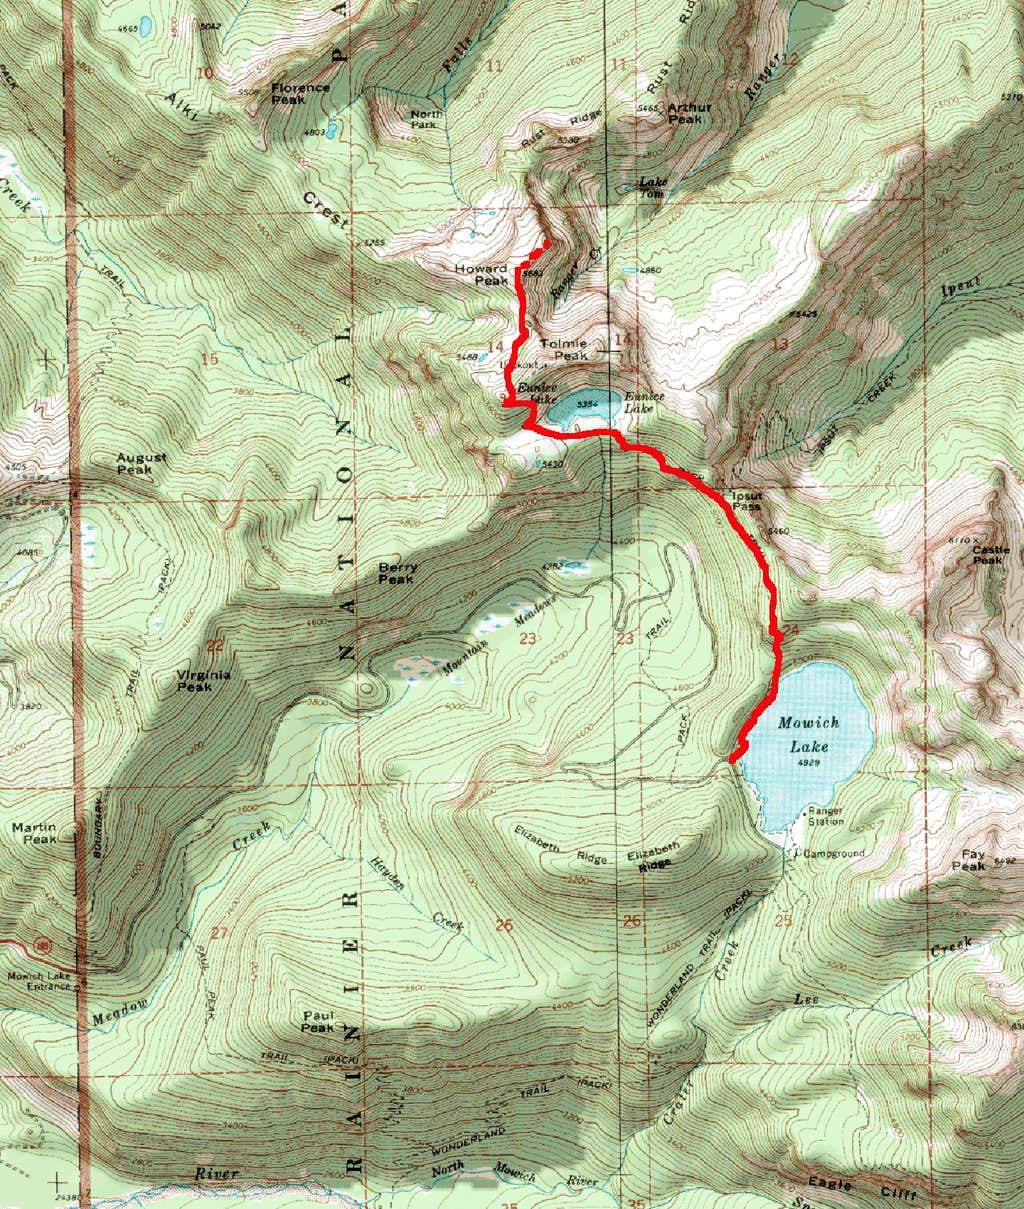 Summer Route From Mowich Lake